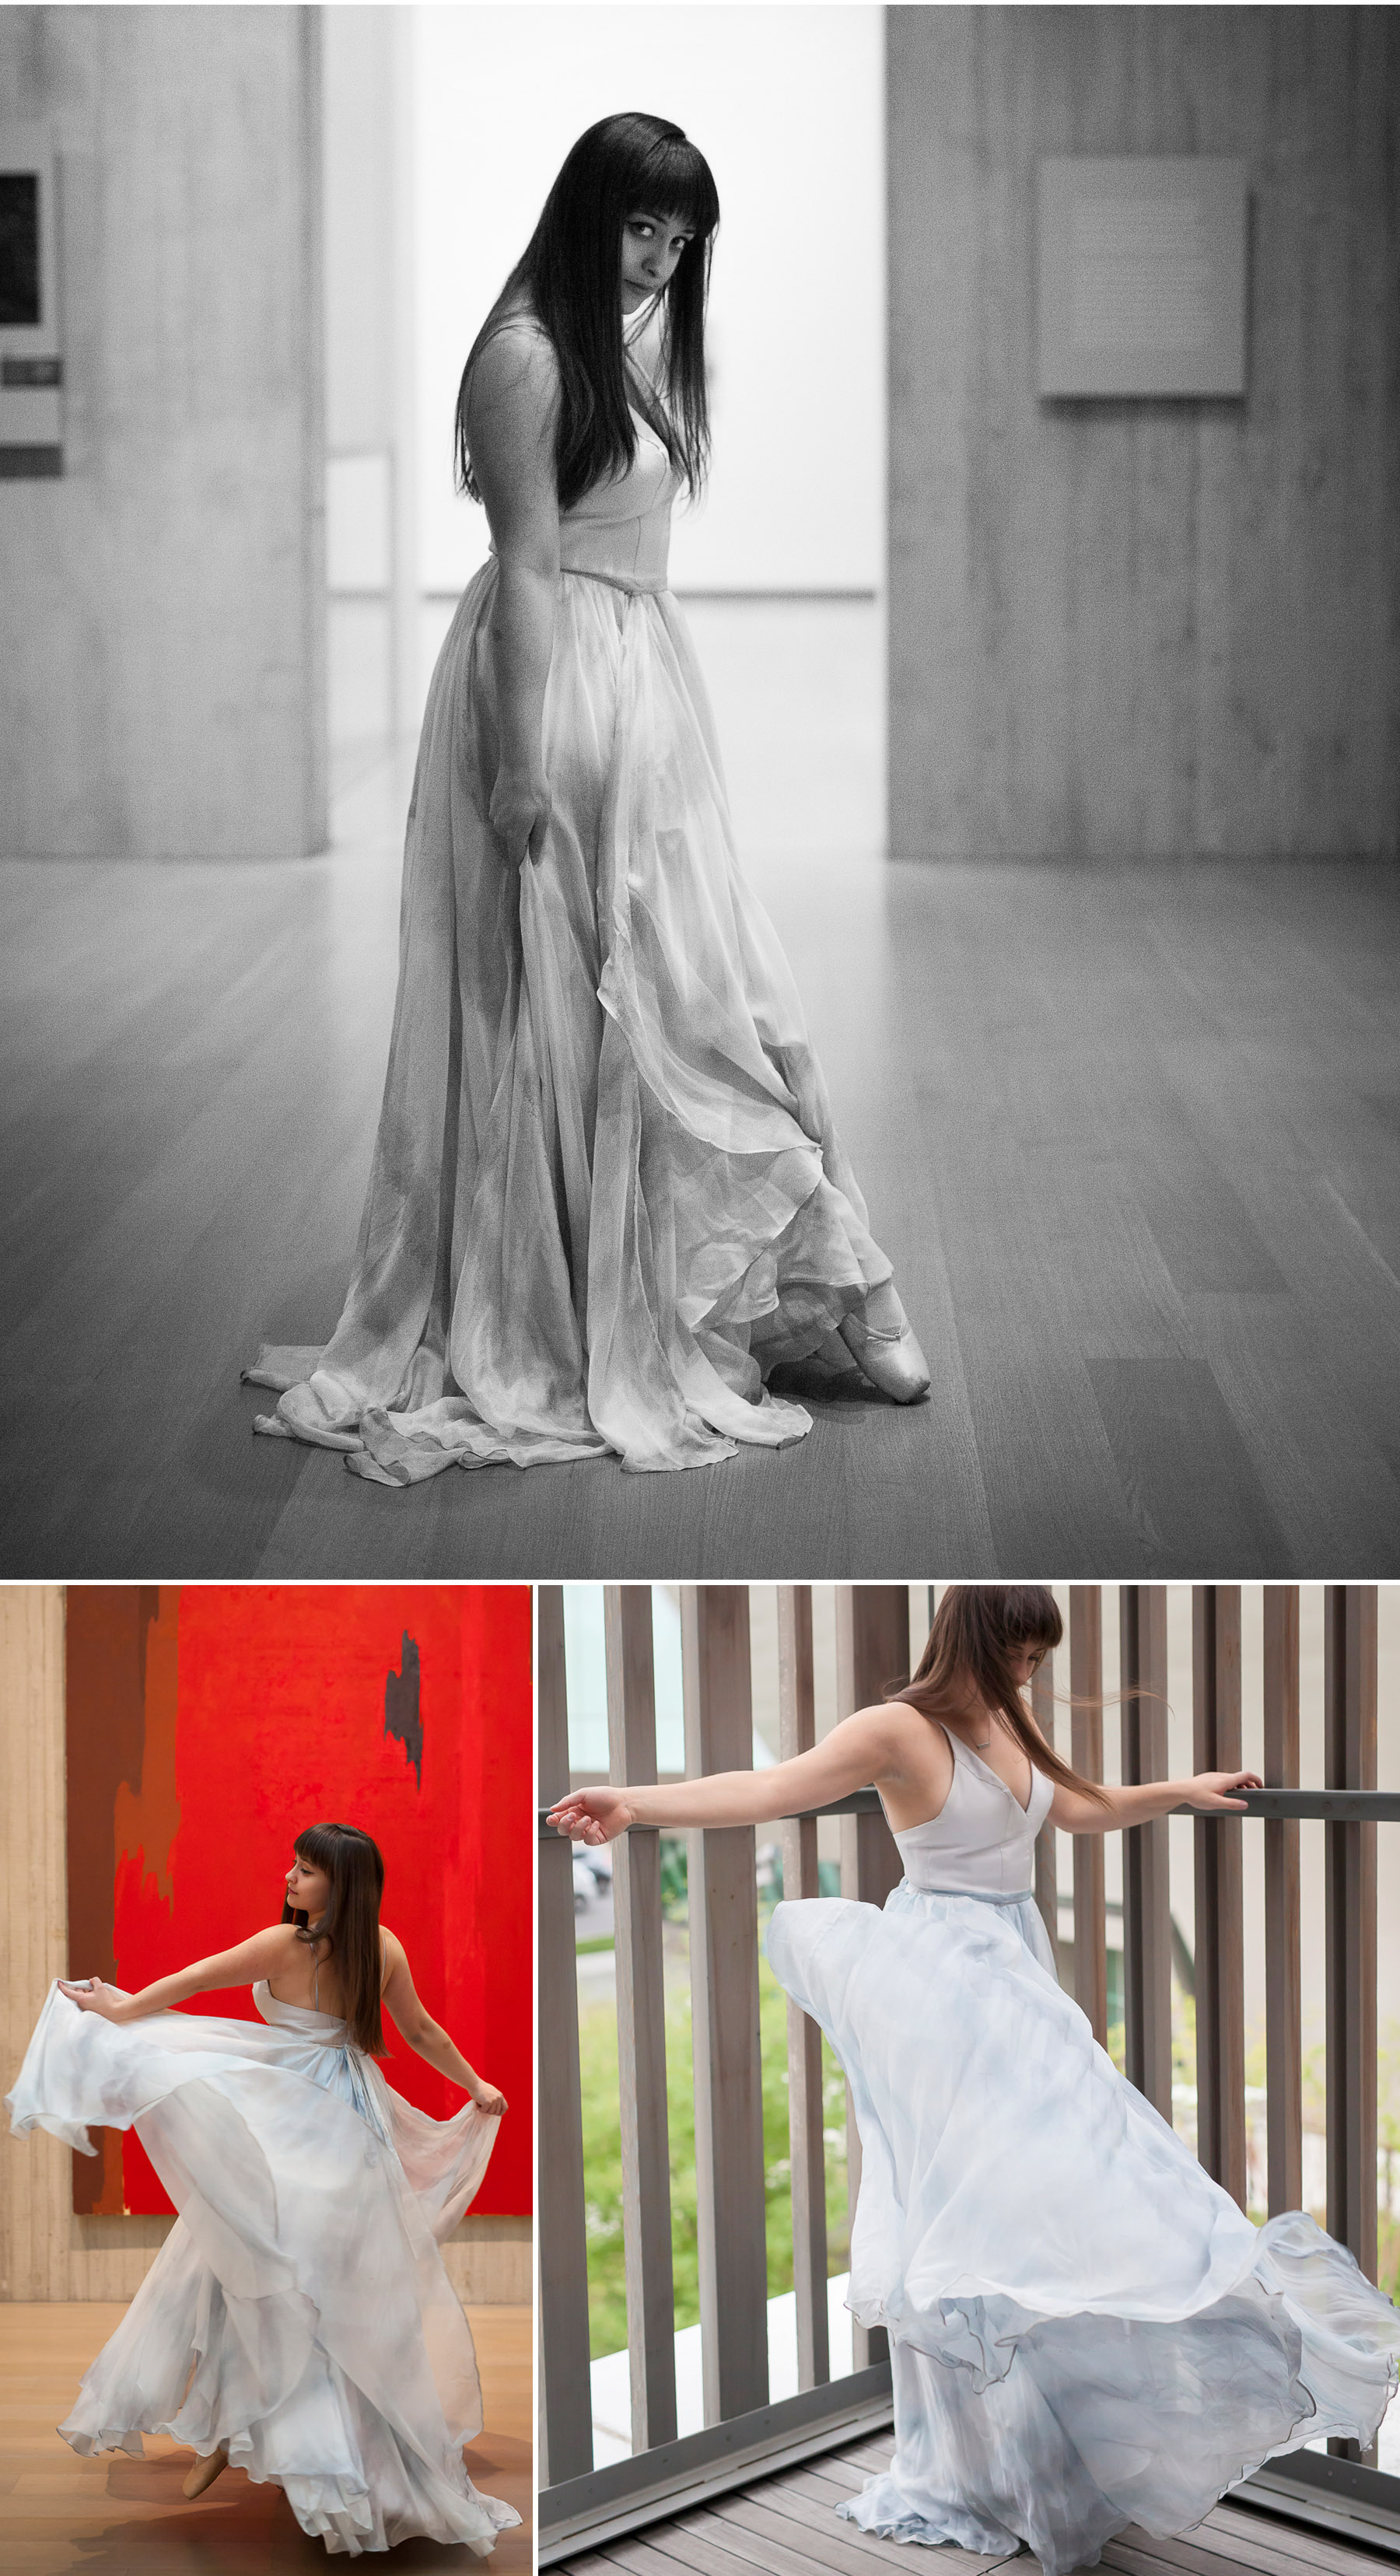 Senior Pictures dancing in dress in Clyfford Still Museum in Denver with photographer Jennifer Koskinen, Merritt Portrait Studio